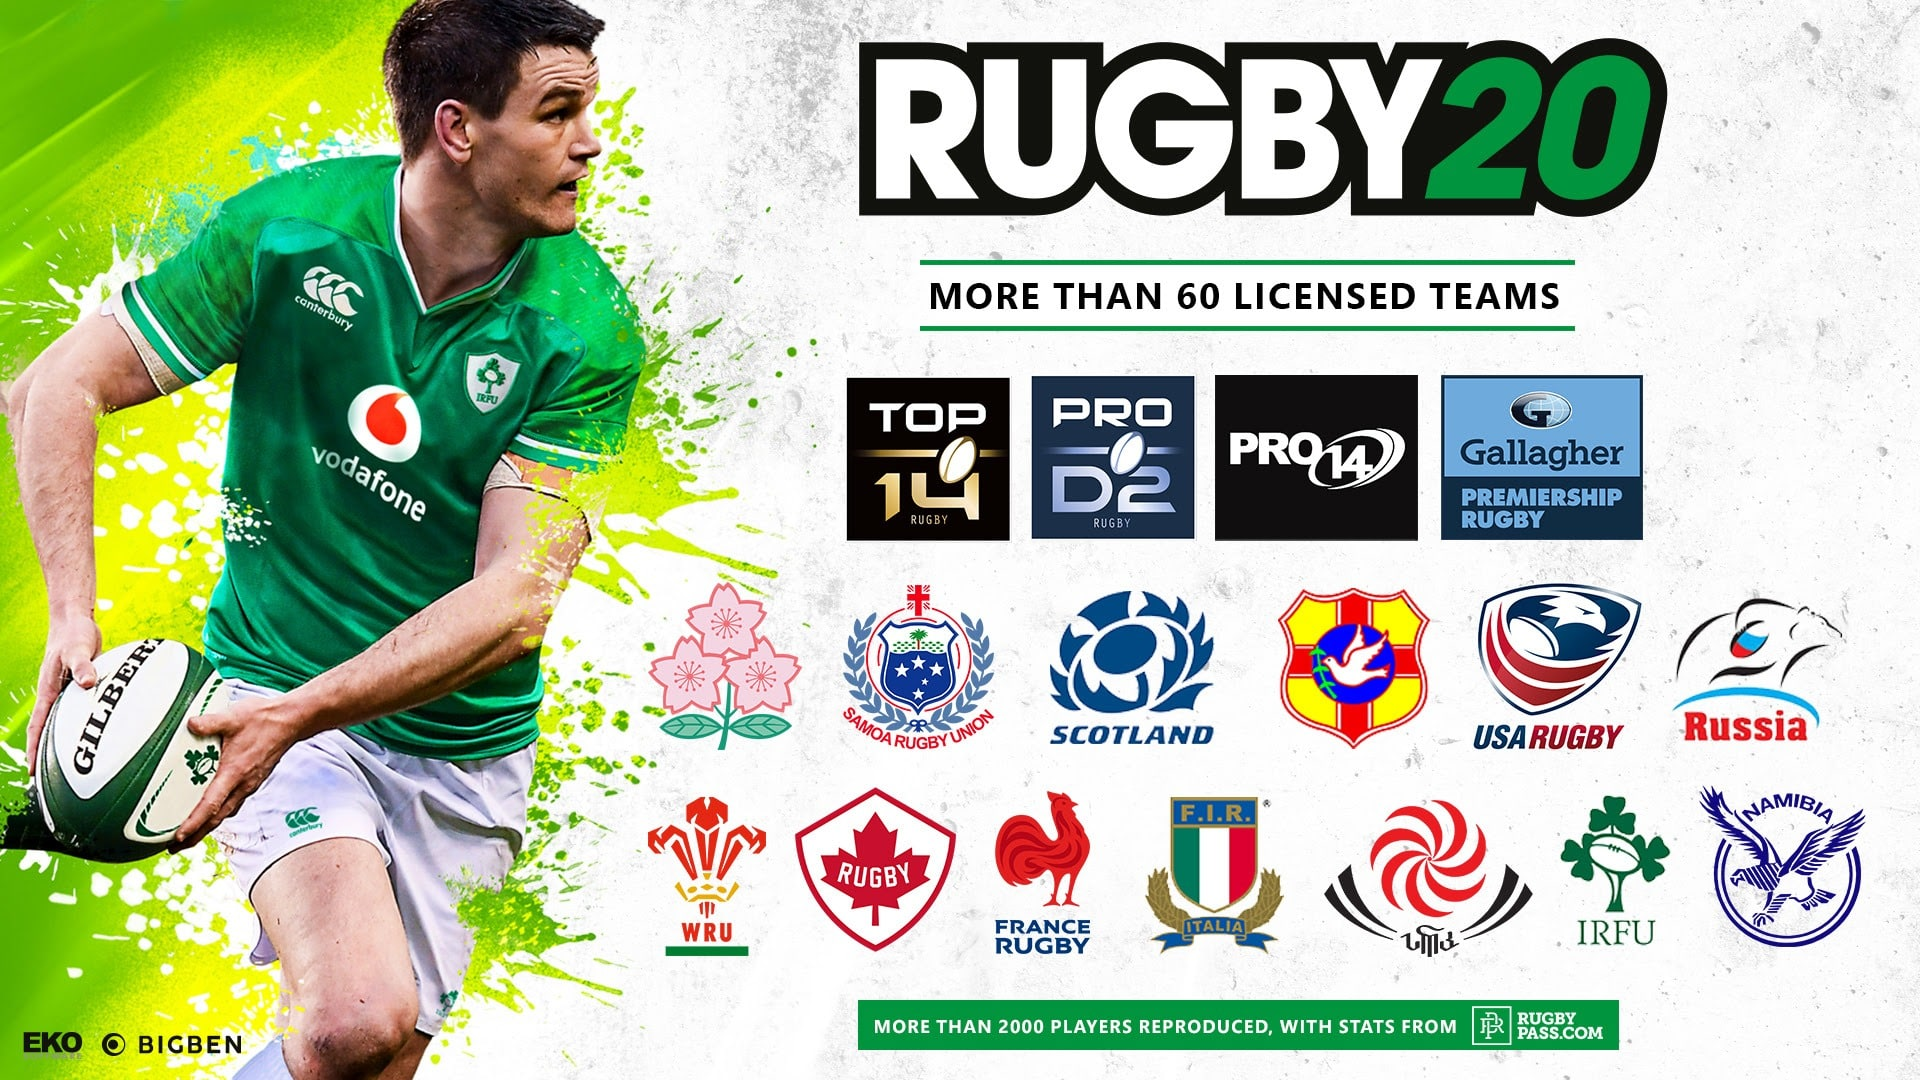 Rugby 20 Video Game Reveals Full Extent Of Its Official Licenses